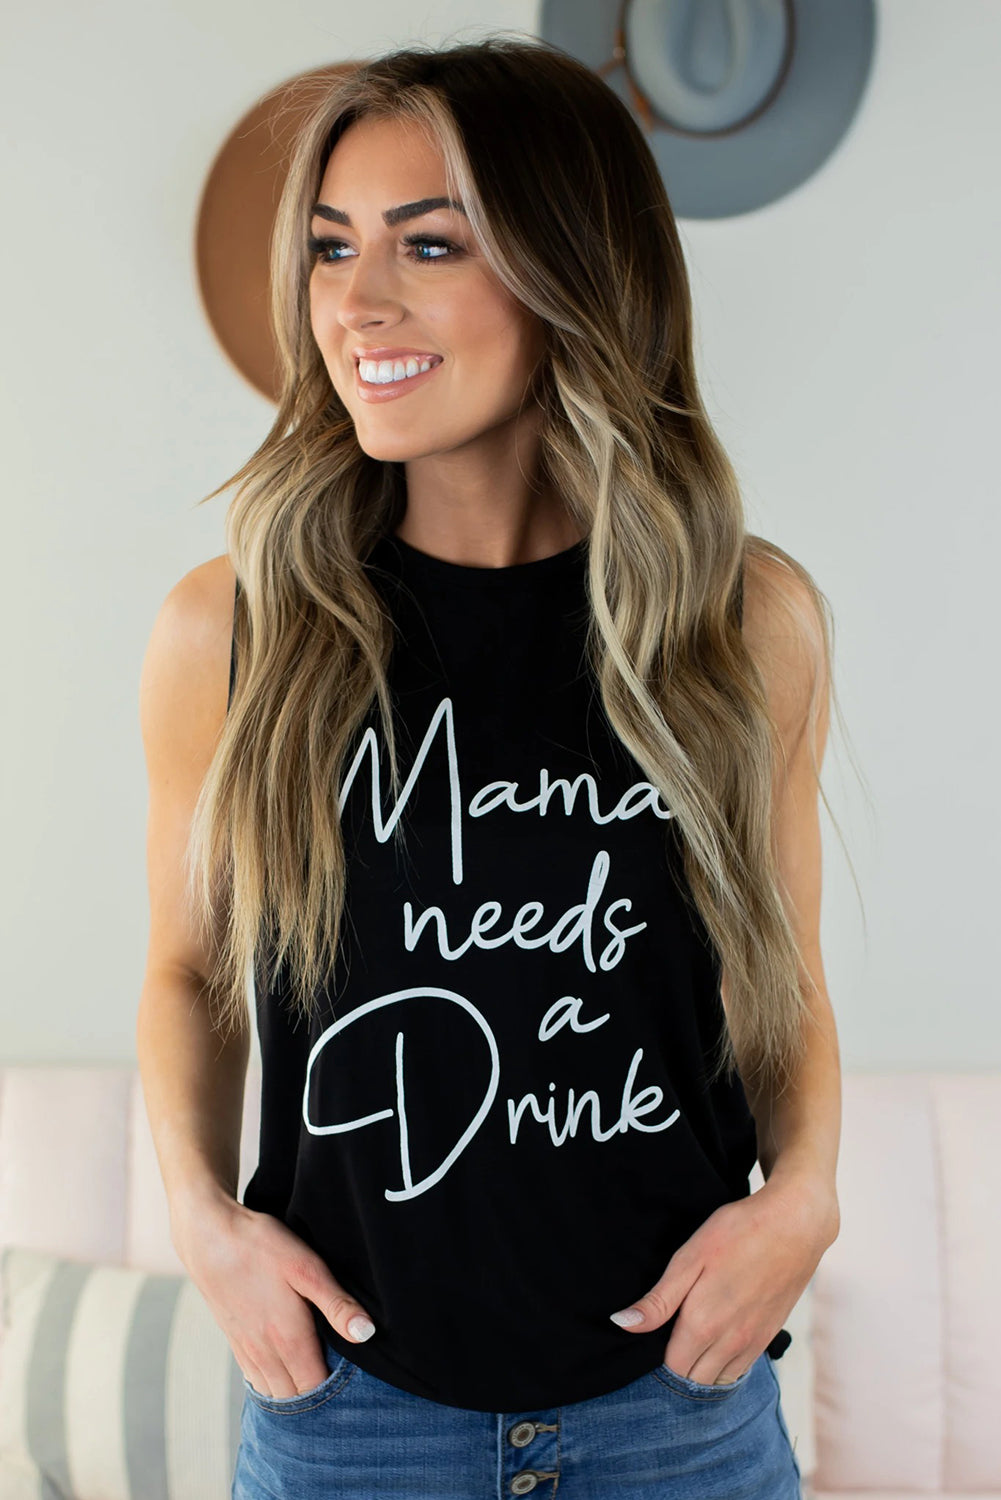 Mama needs a Drink Graphic Tank Tank Tops Discount Designer Fashion Clothes Shoes Bags Women Men Kids Children Black Owned Business